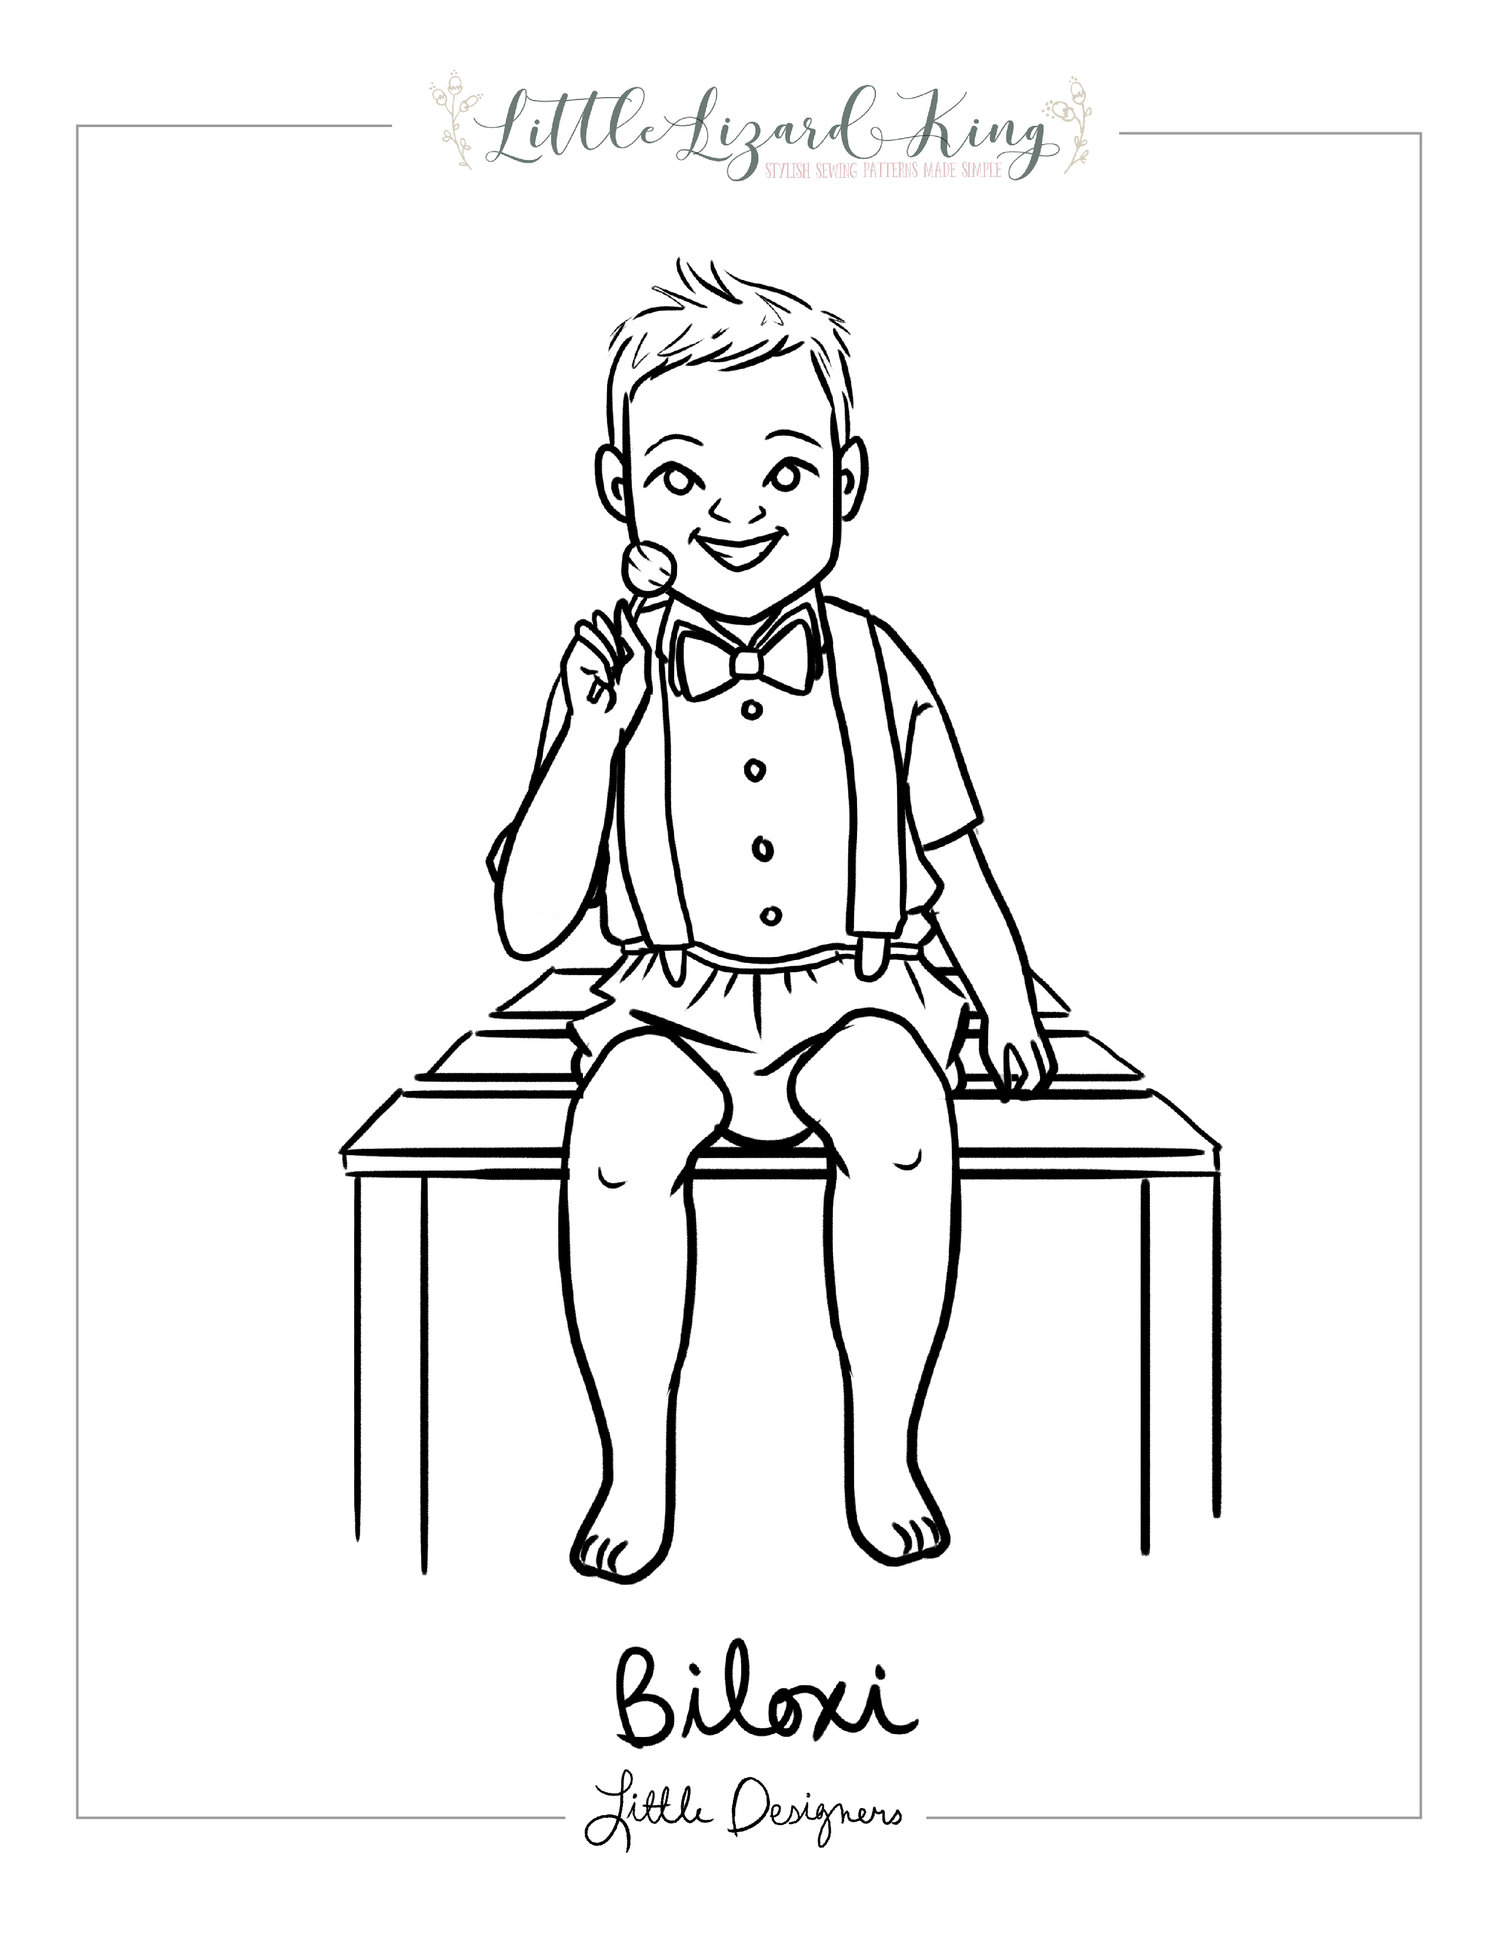 Biloxi Bow Tie Coloring Page — Little Lizard King